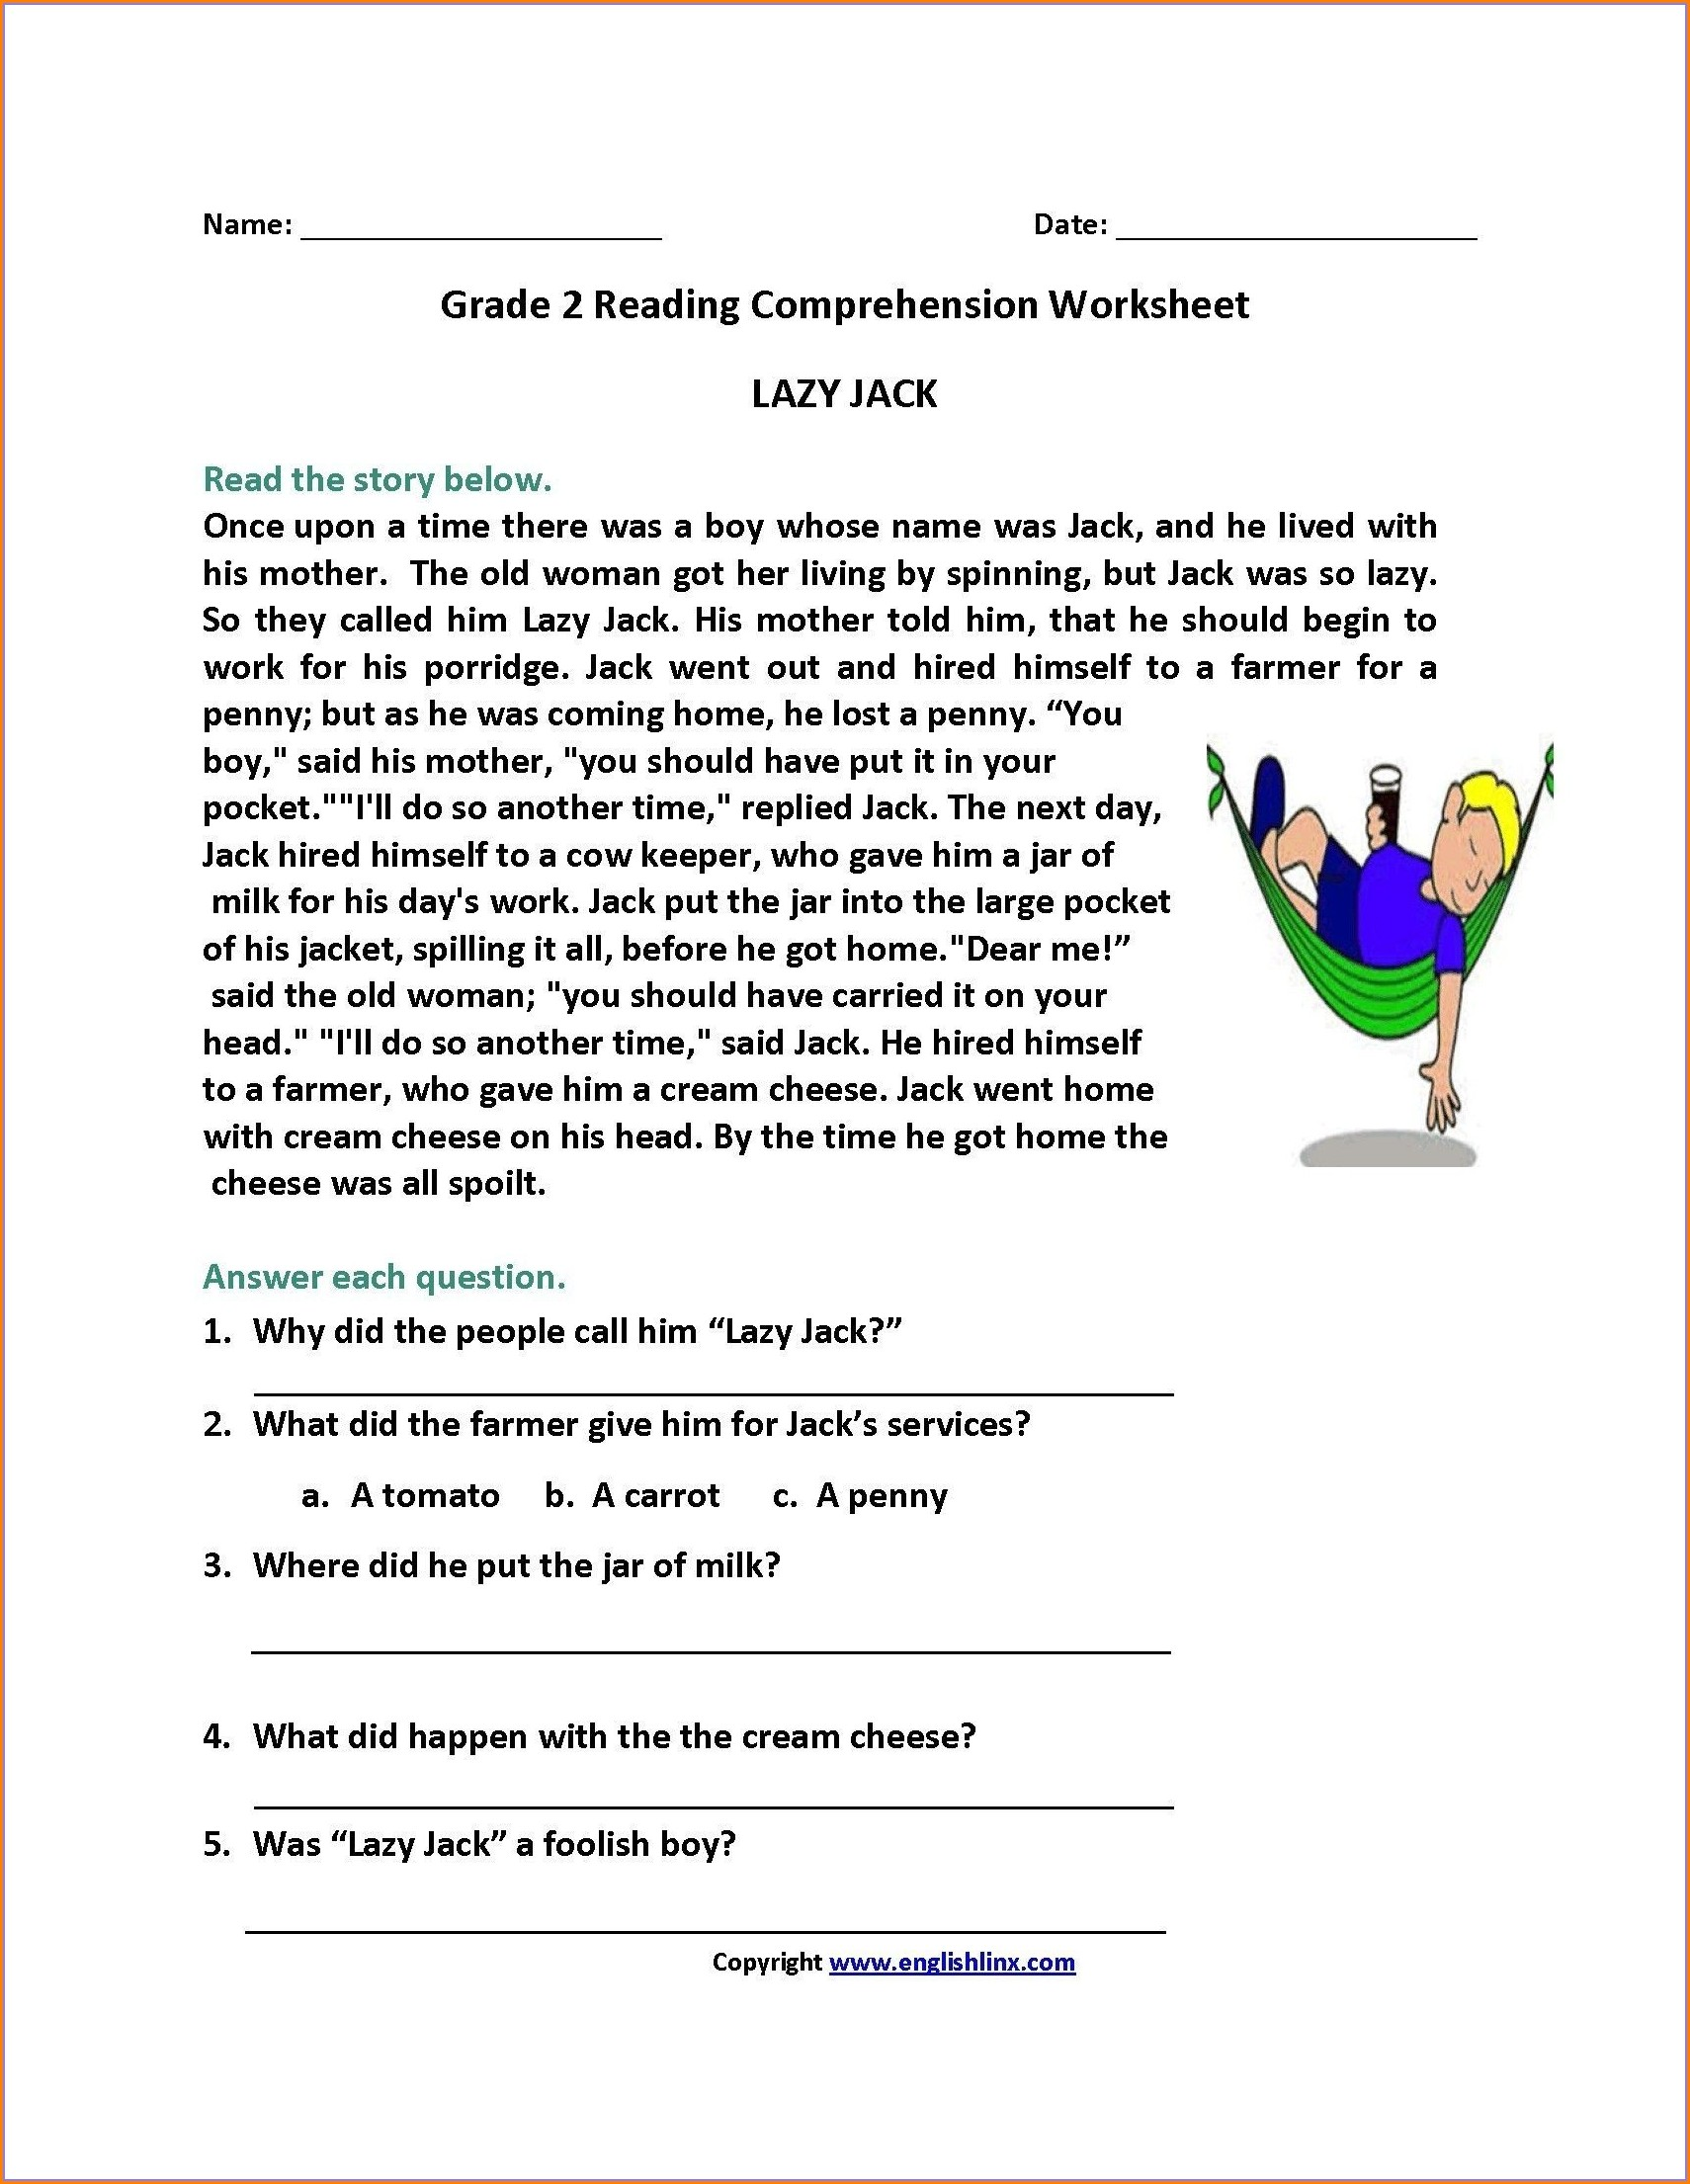 Reading Comprehension Filipino Worksheet For Grade 1